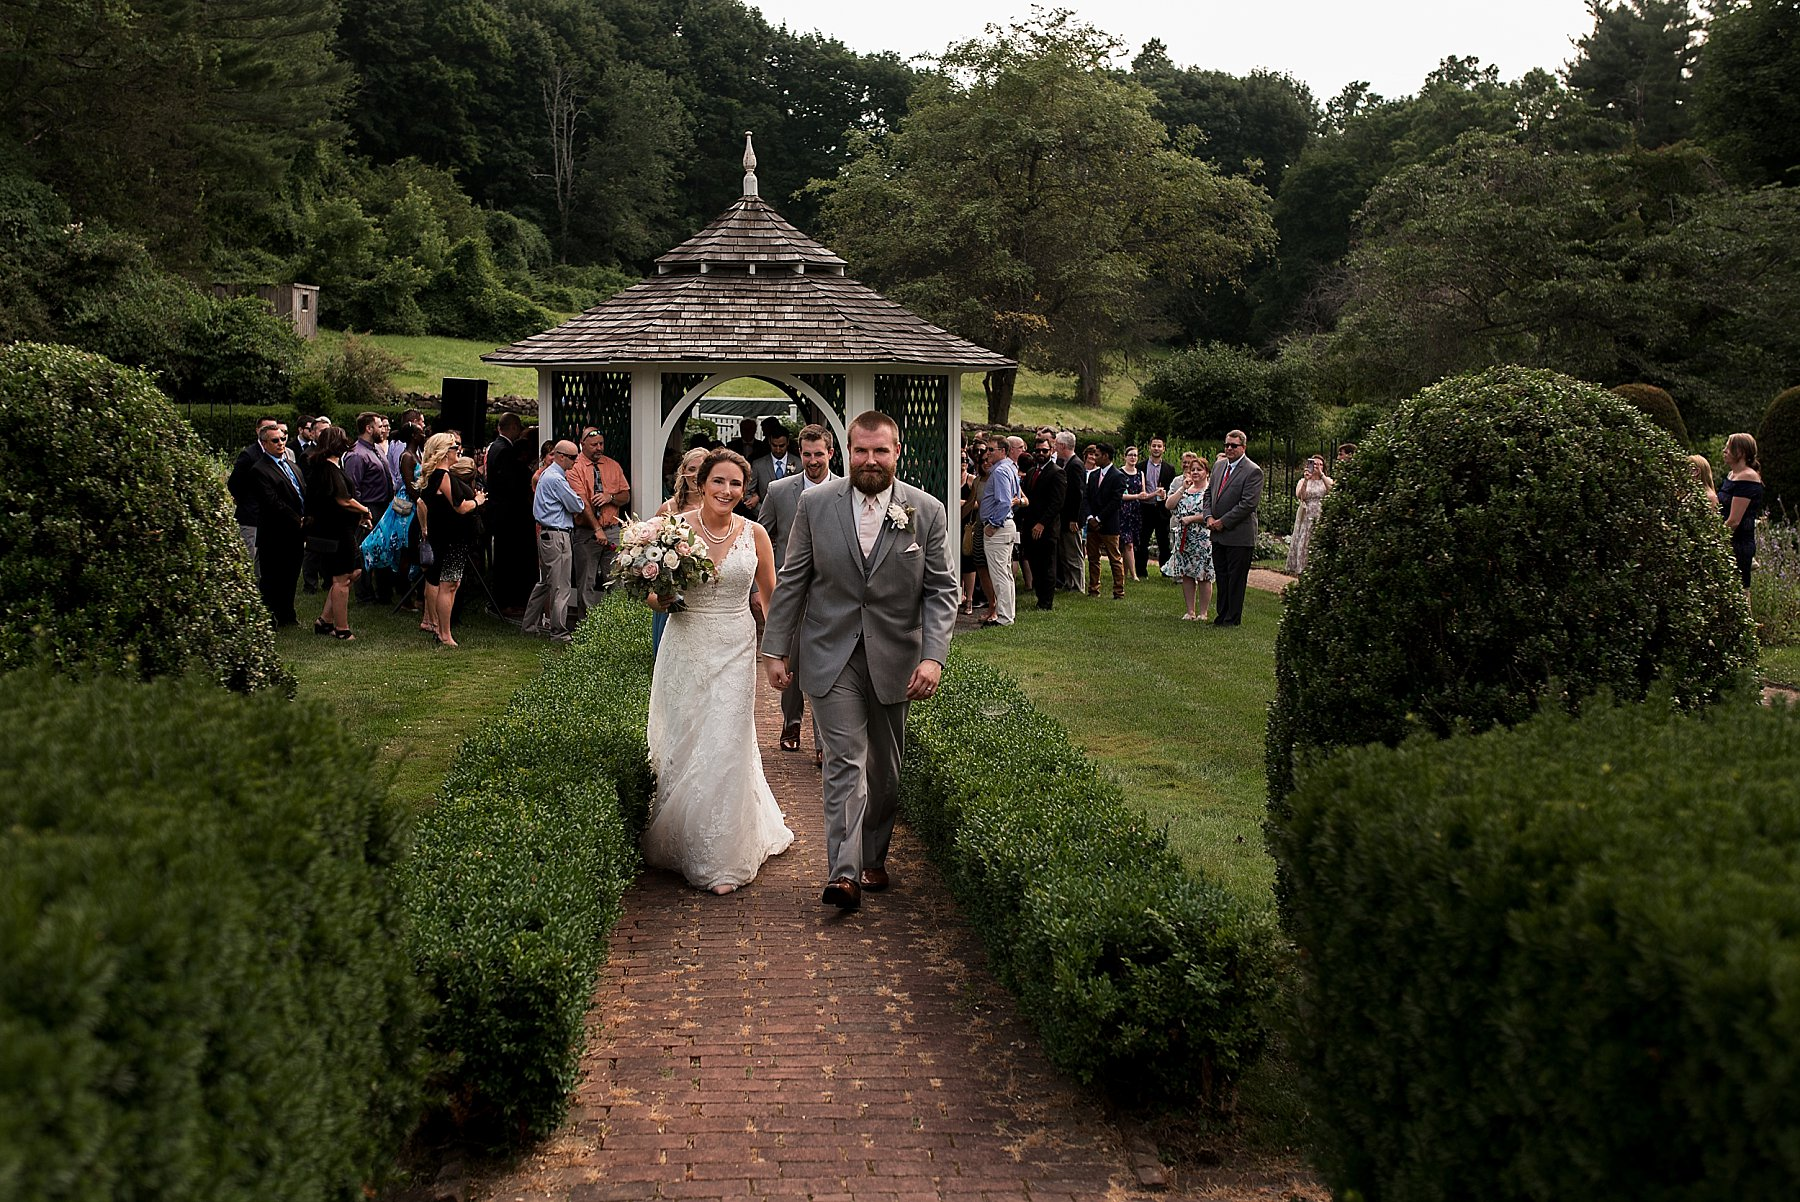 wedding ceremony at the Hillstead Museum in Farmington, CT